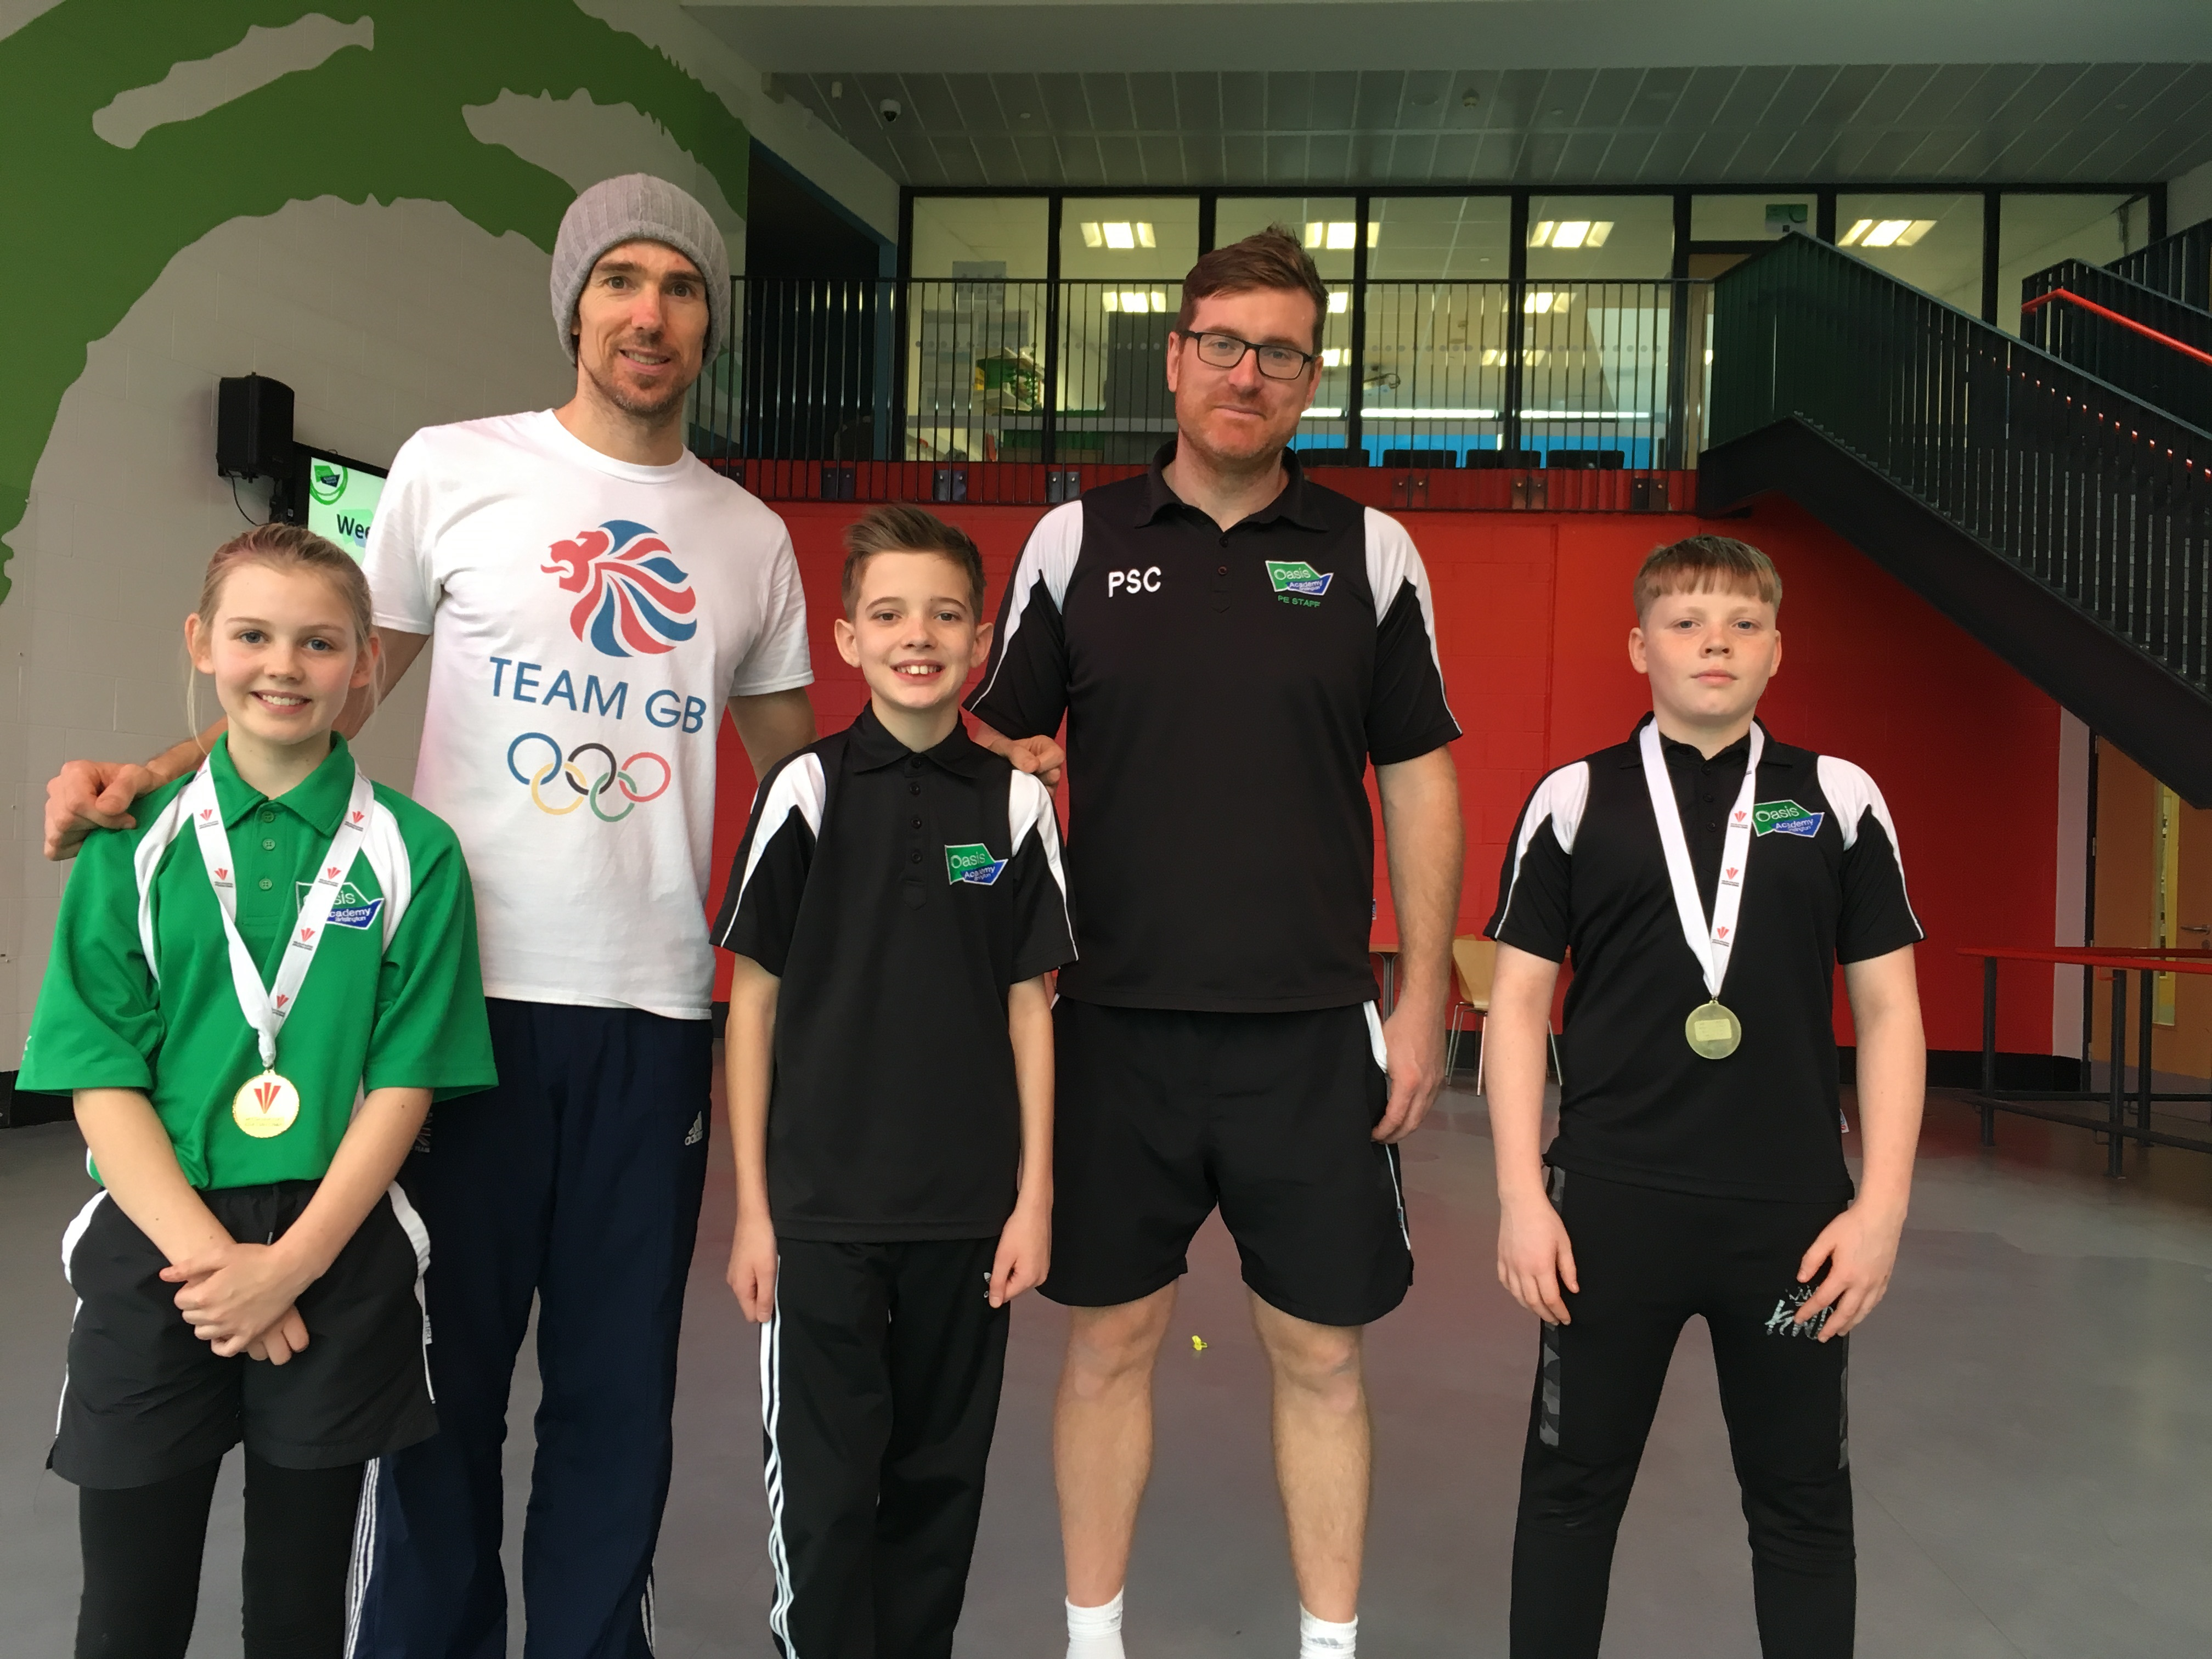 Team GB high jumper visits Oasis Academy Brislington